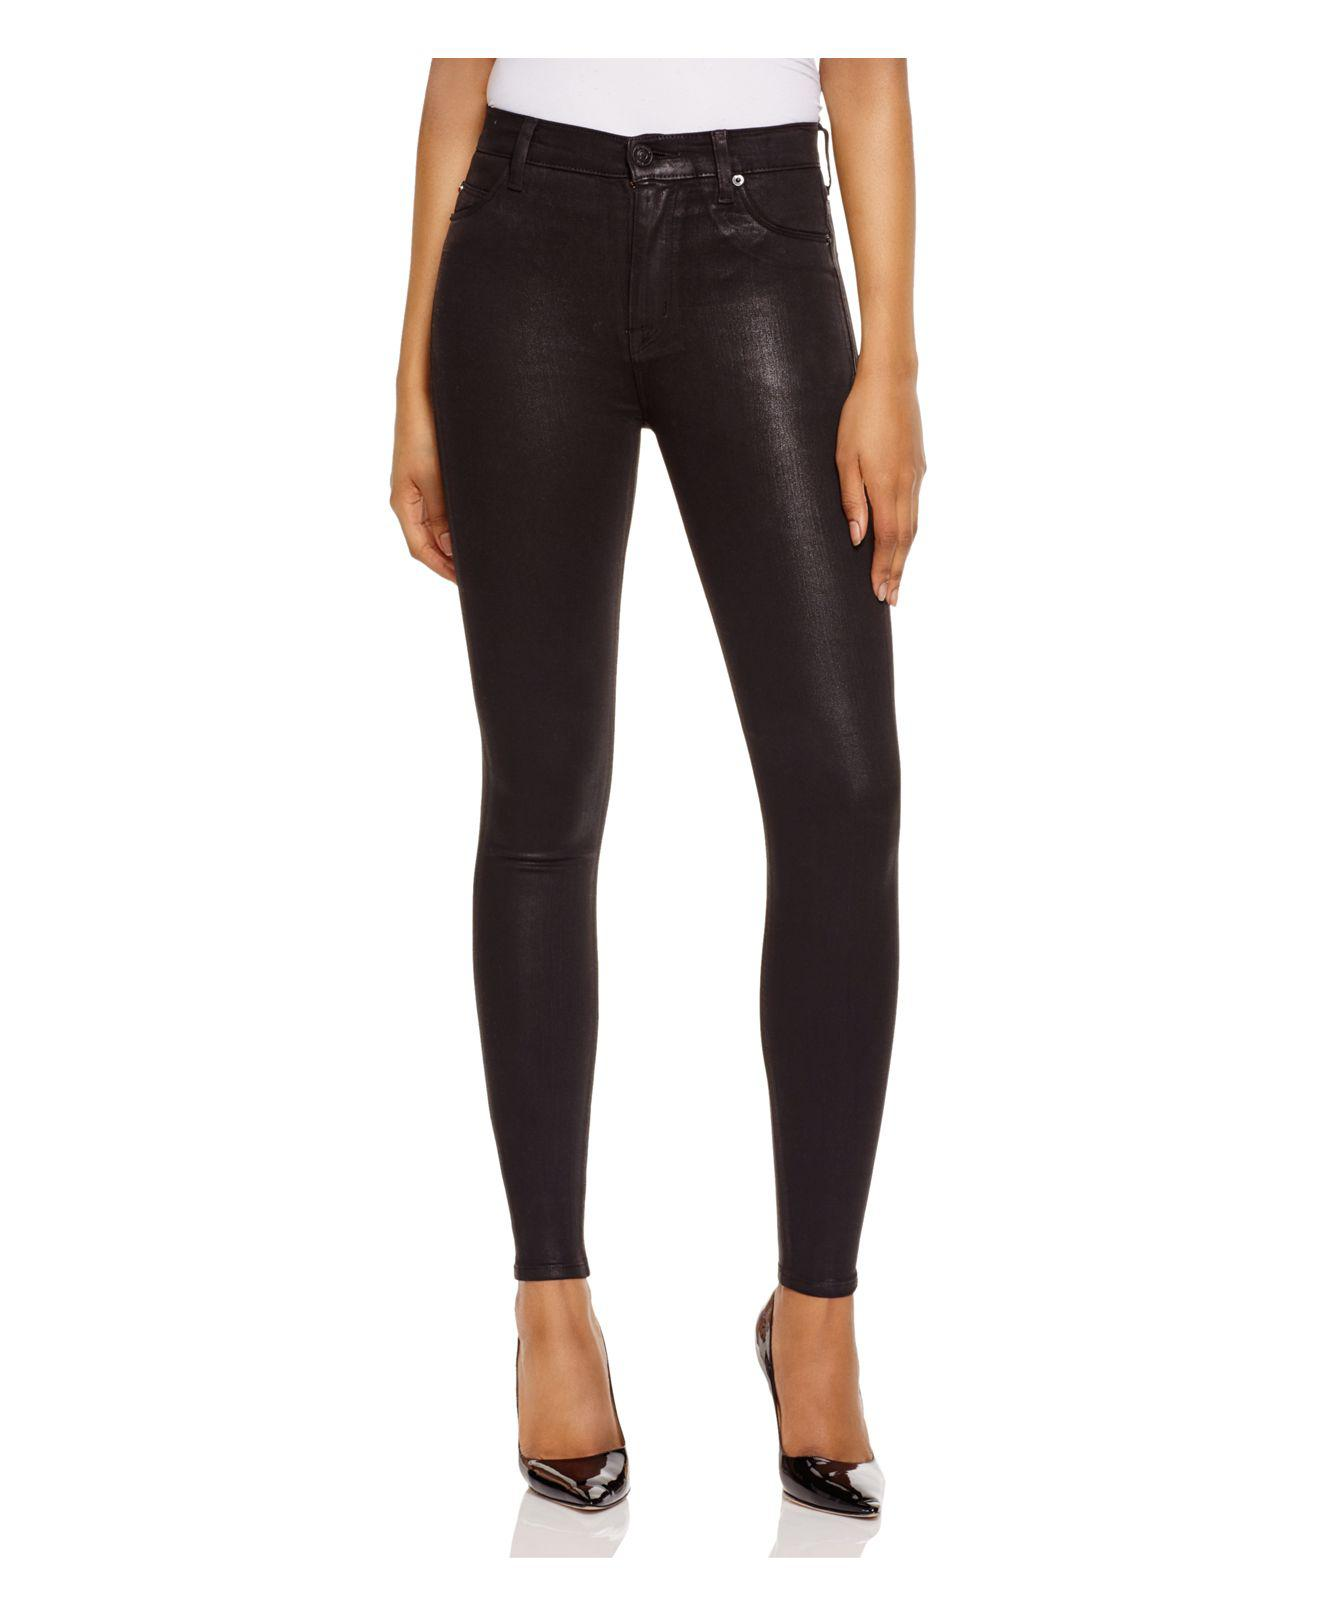 bcbff632884 Hudson Jeans Barbara Coated Super Skinny Jeans In Noir in Black - Lyst